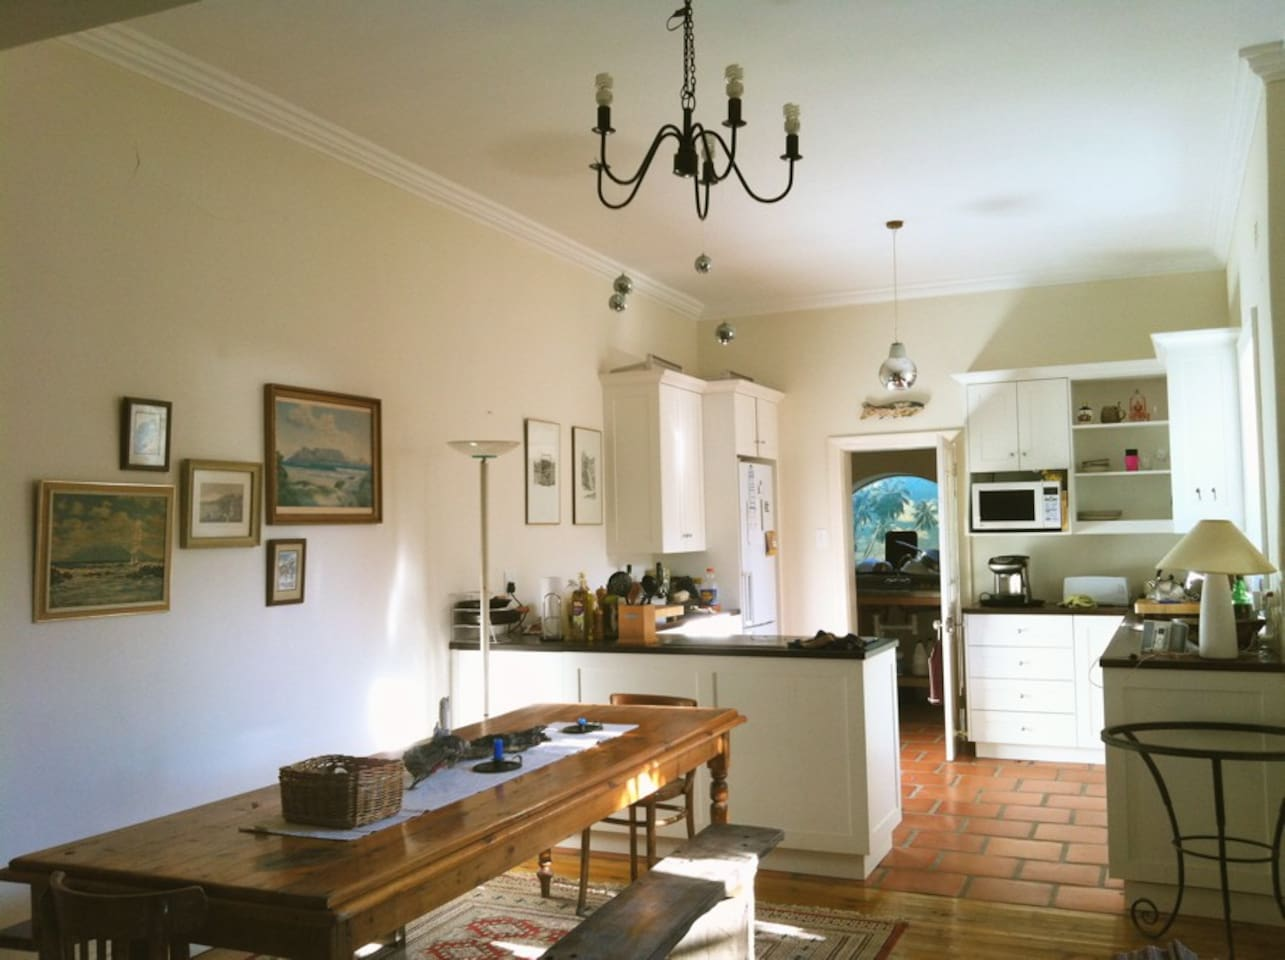 Fully fitted kitchen with all the necessities, including clothes washing machine and tumbledryer.